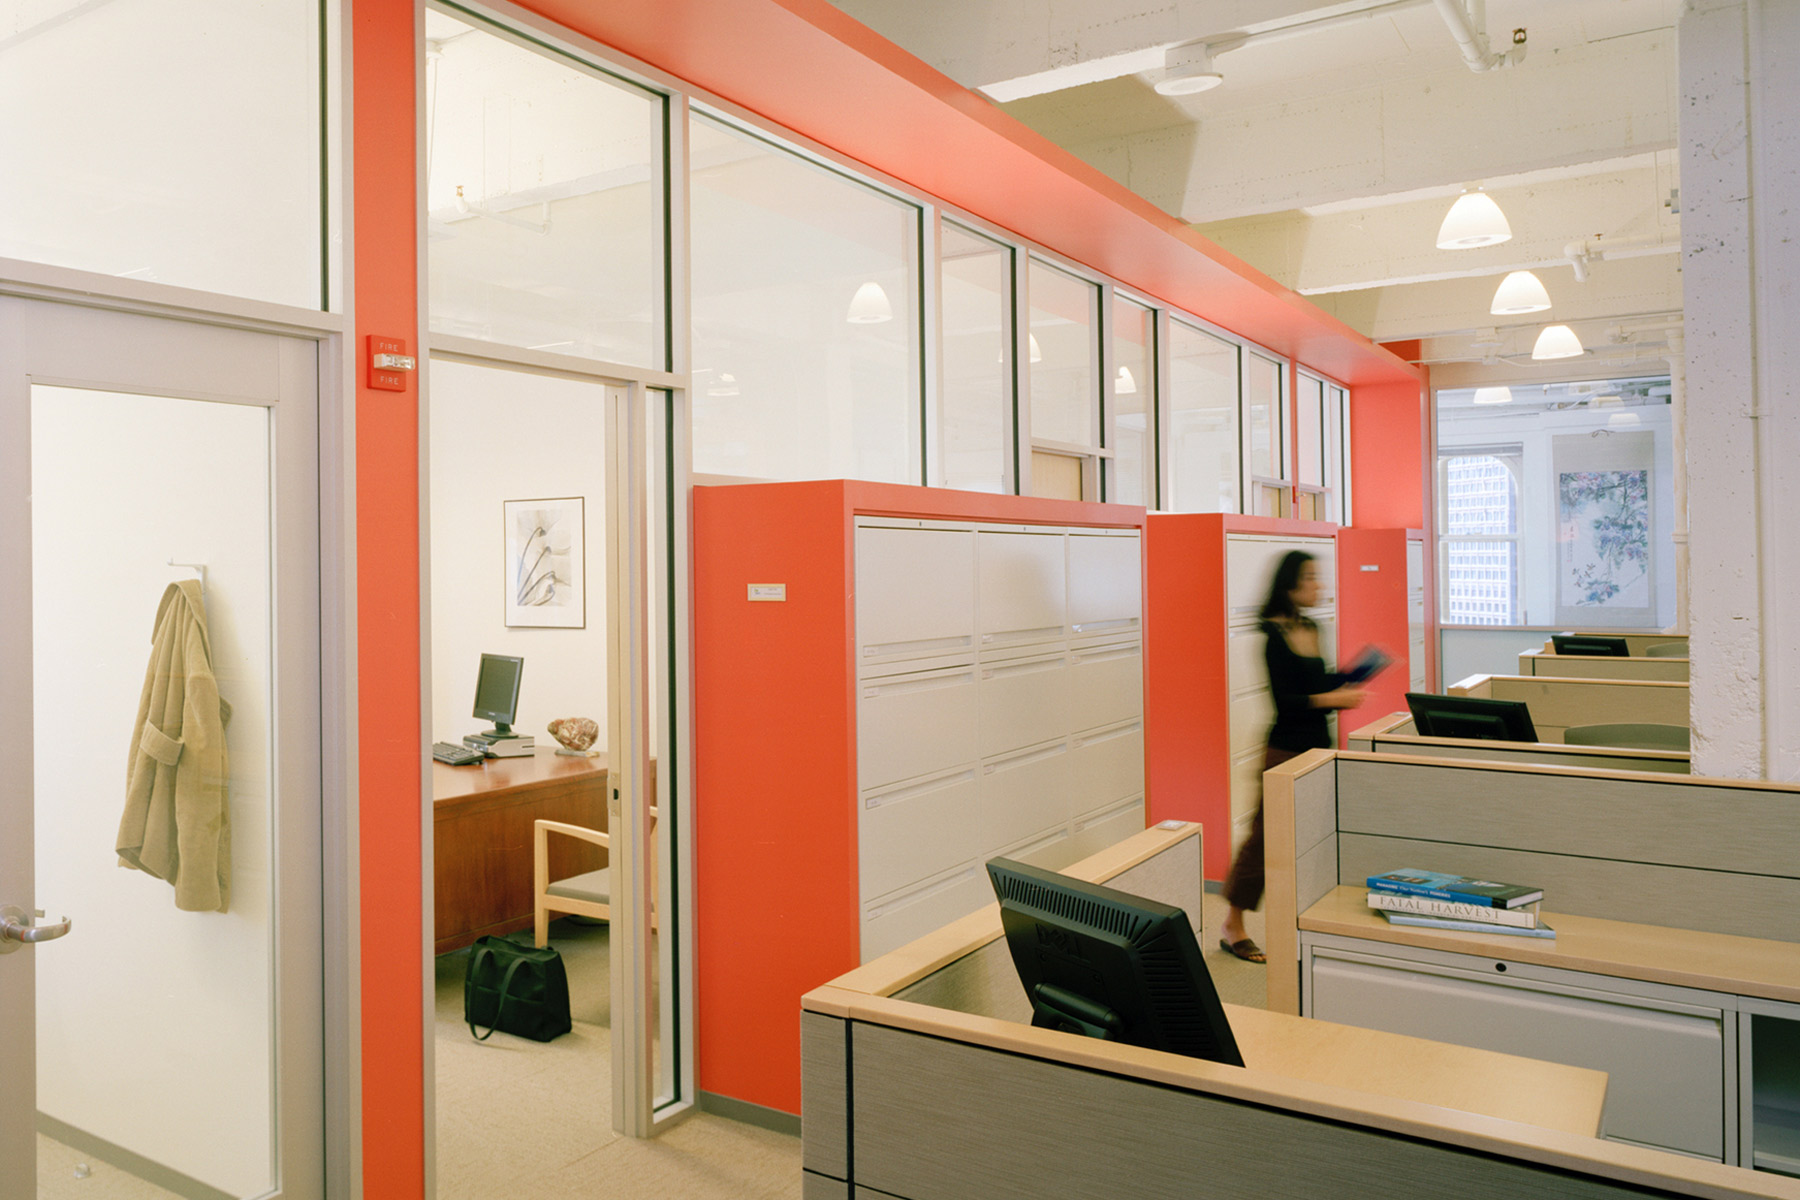 As one of the nation's most influential environmental action organizations, the Natural Resource's Defense Council's offices in San Francisco were designed to promote sustainable goals; the energy-efficient, environmentally responsible workplaces are certified LEED Gold.